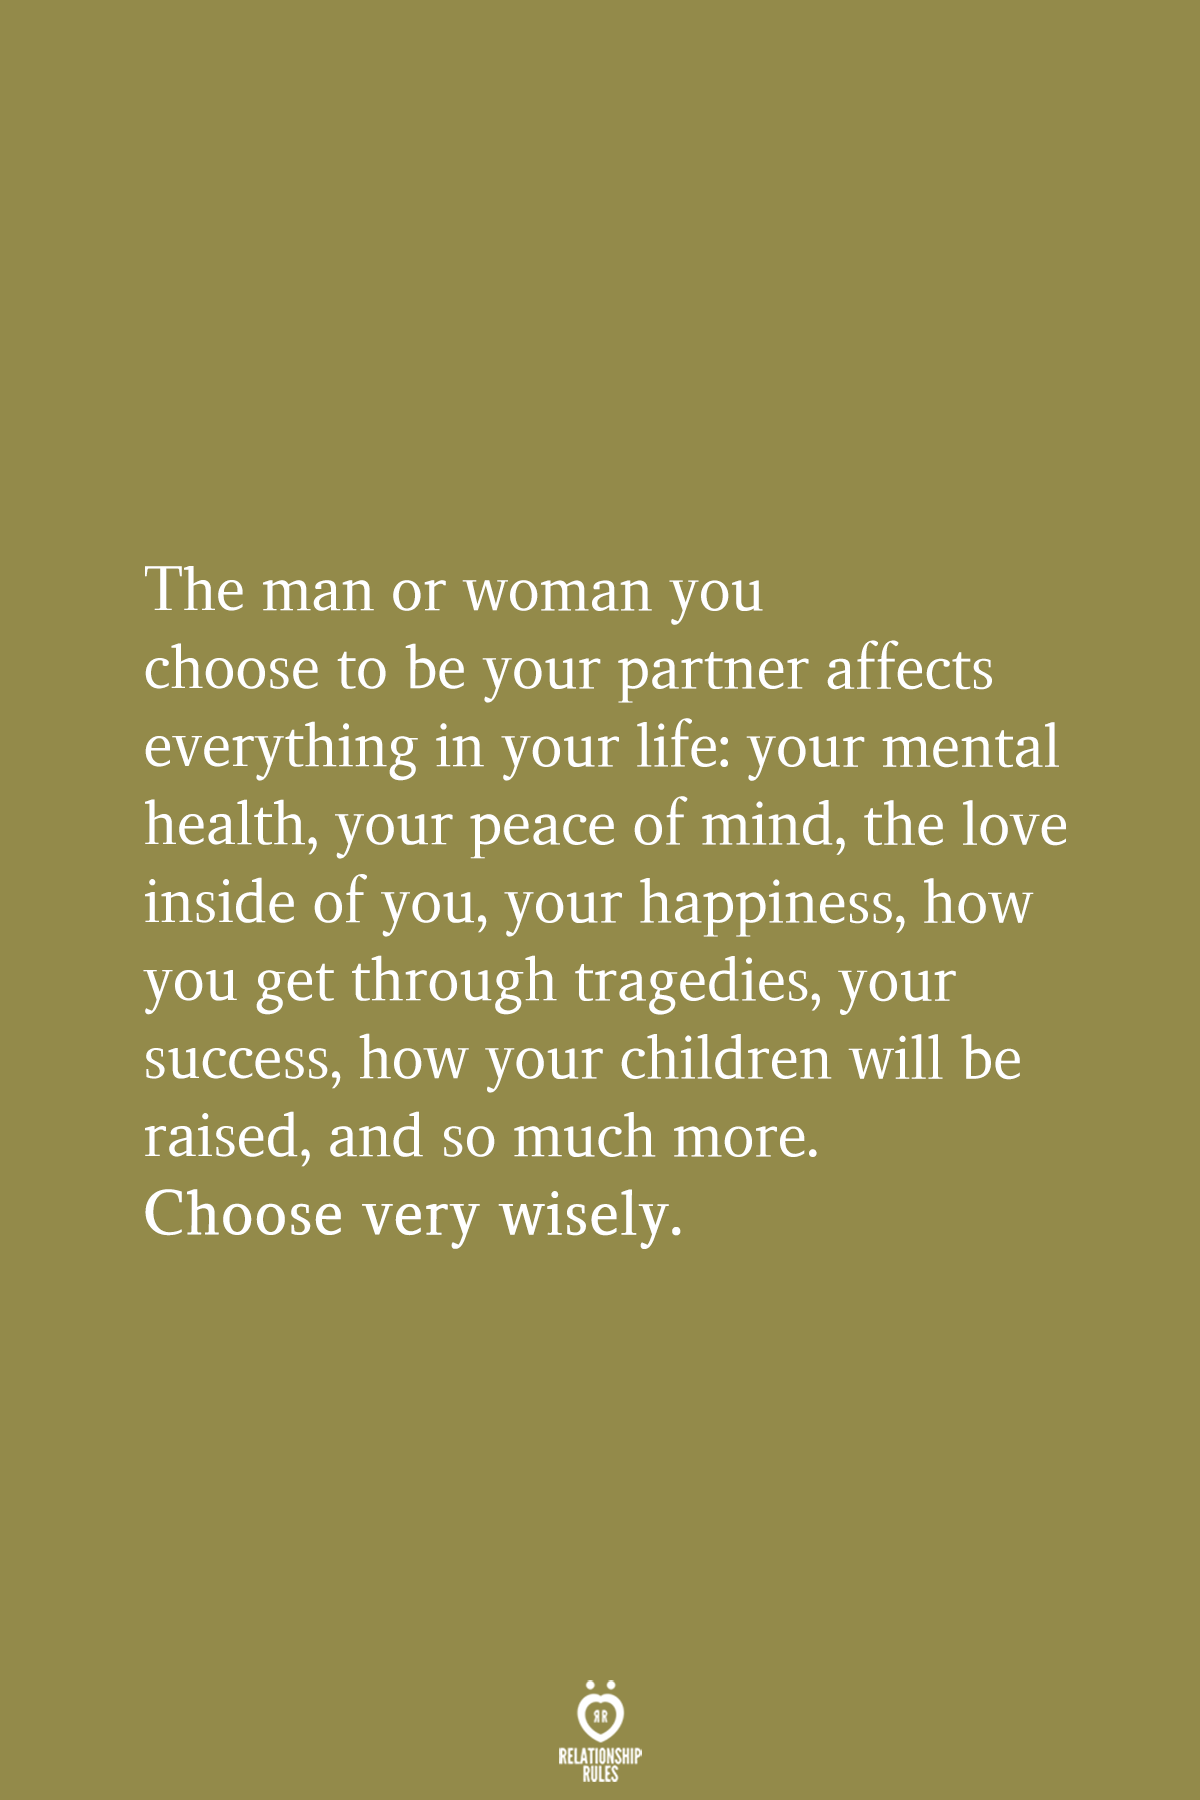 25 Relationship Rules To Rekindle Your Passion Partner Quotes Wisdom Quotes Live Quotes For Him